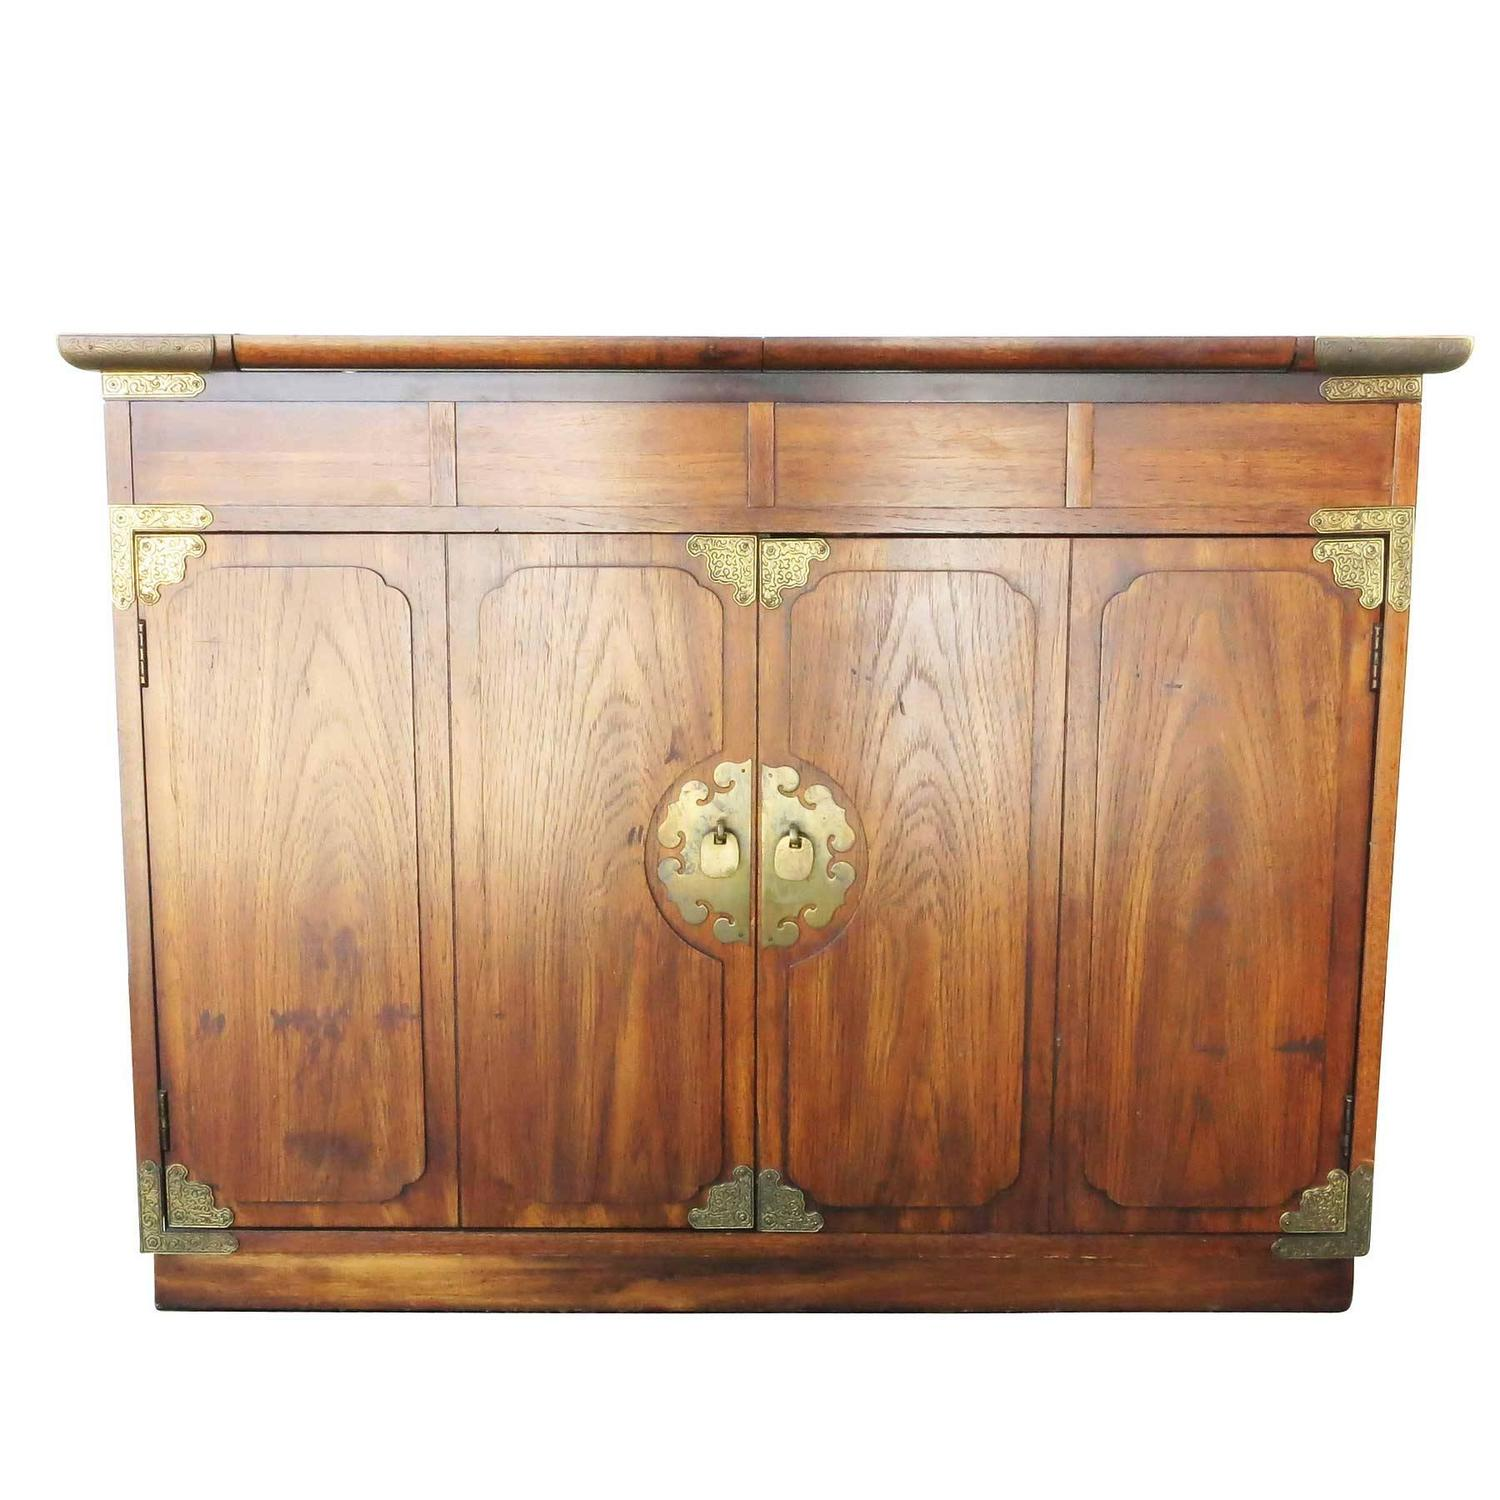 Asian Inspired Small Credenza By Thomasville For Huntley At 1stdibs